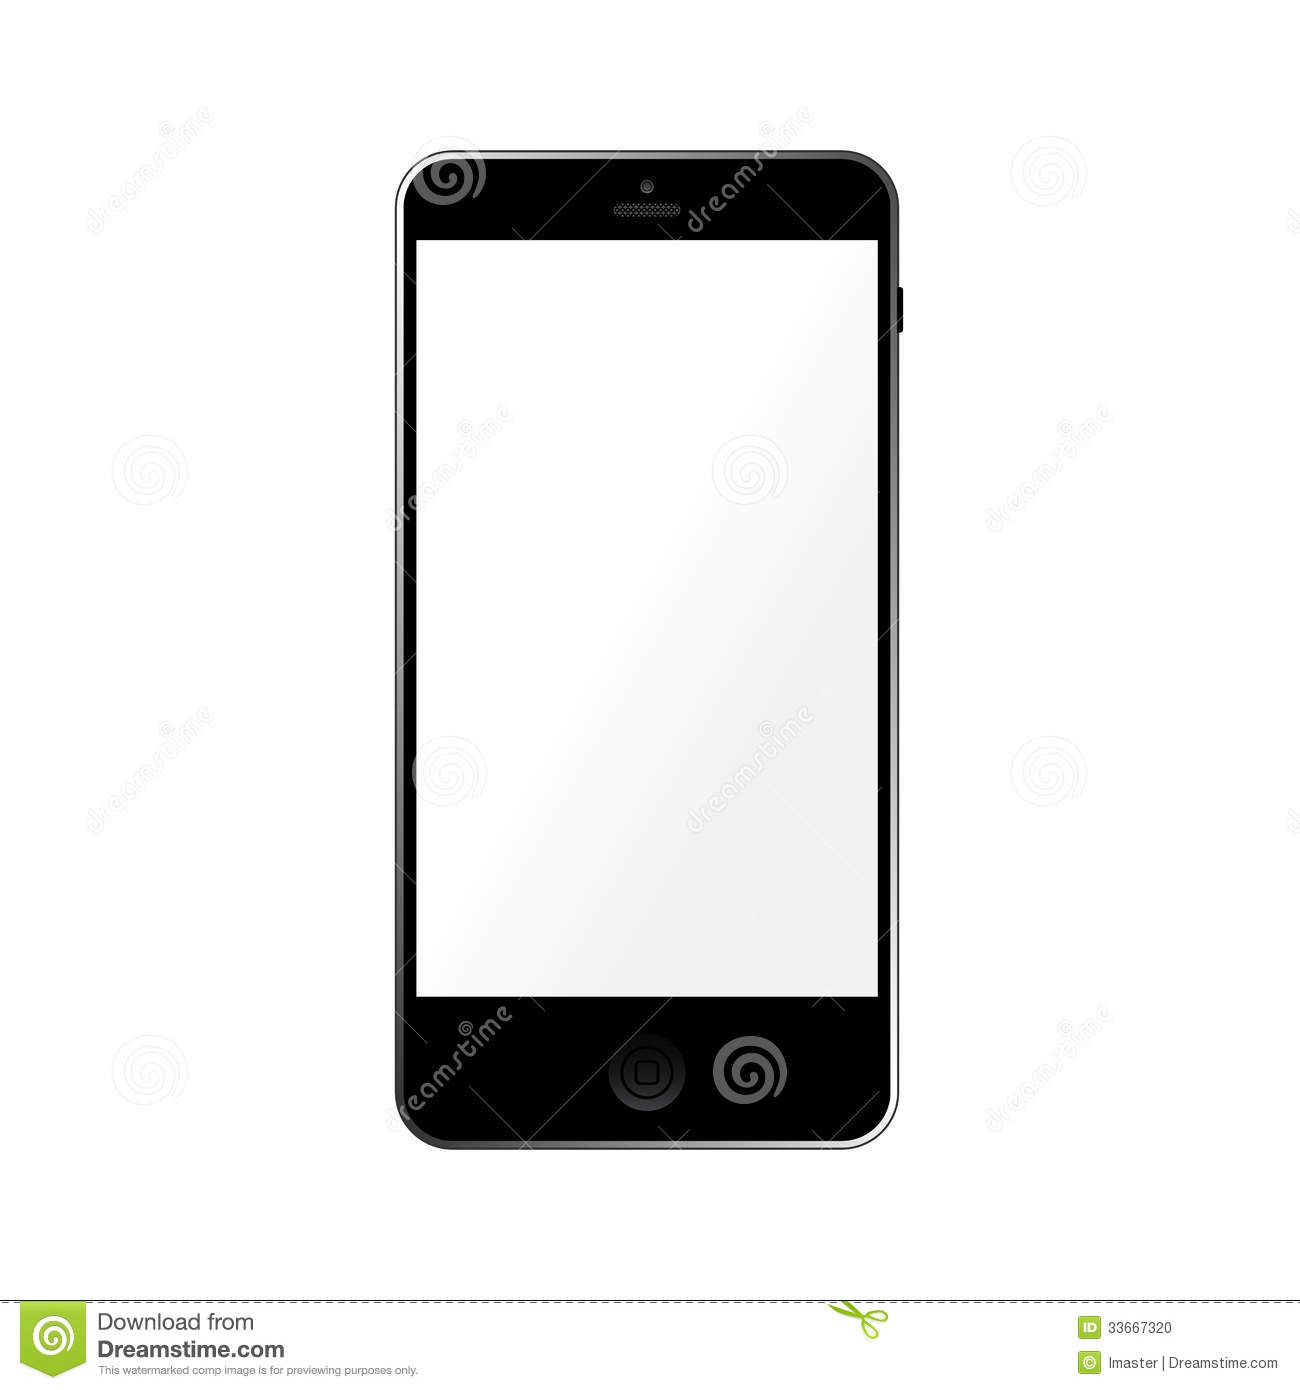 Iphone Wallpaper Icon Template Simple Template Smartphone With Empty Touchscreen Stock